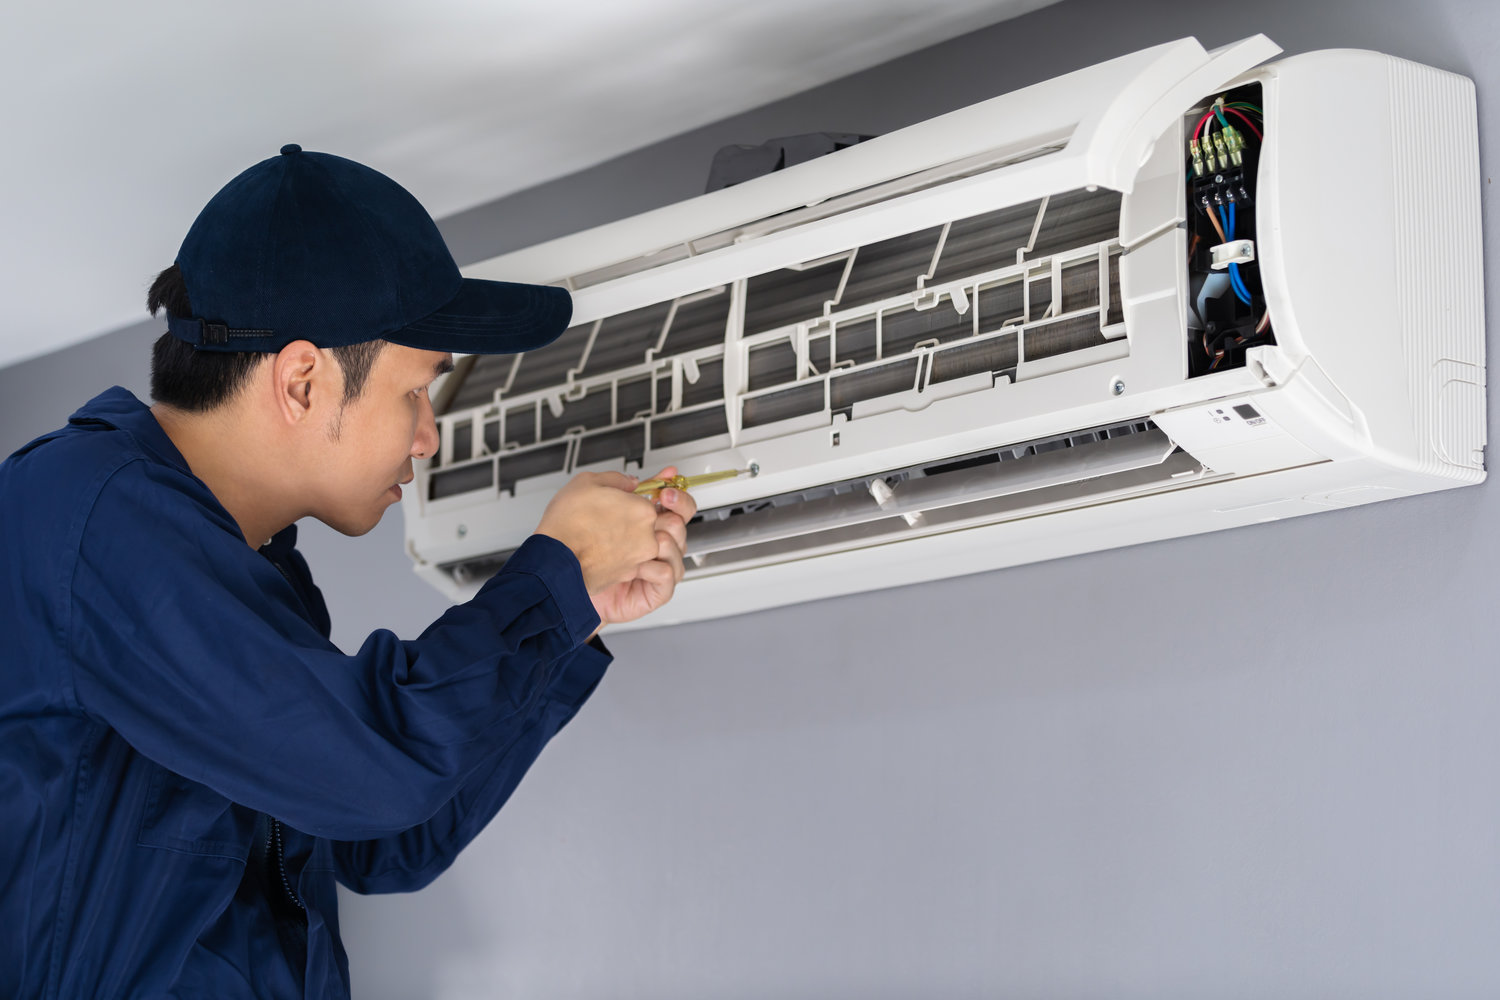 How To Hire A Technician For Air Conditioning Service In Parramatta